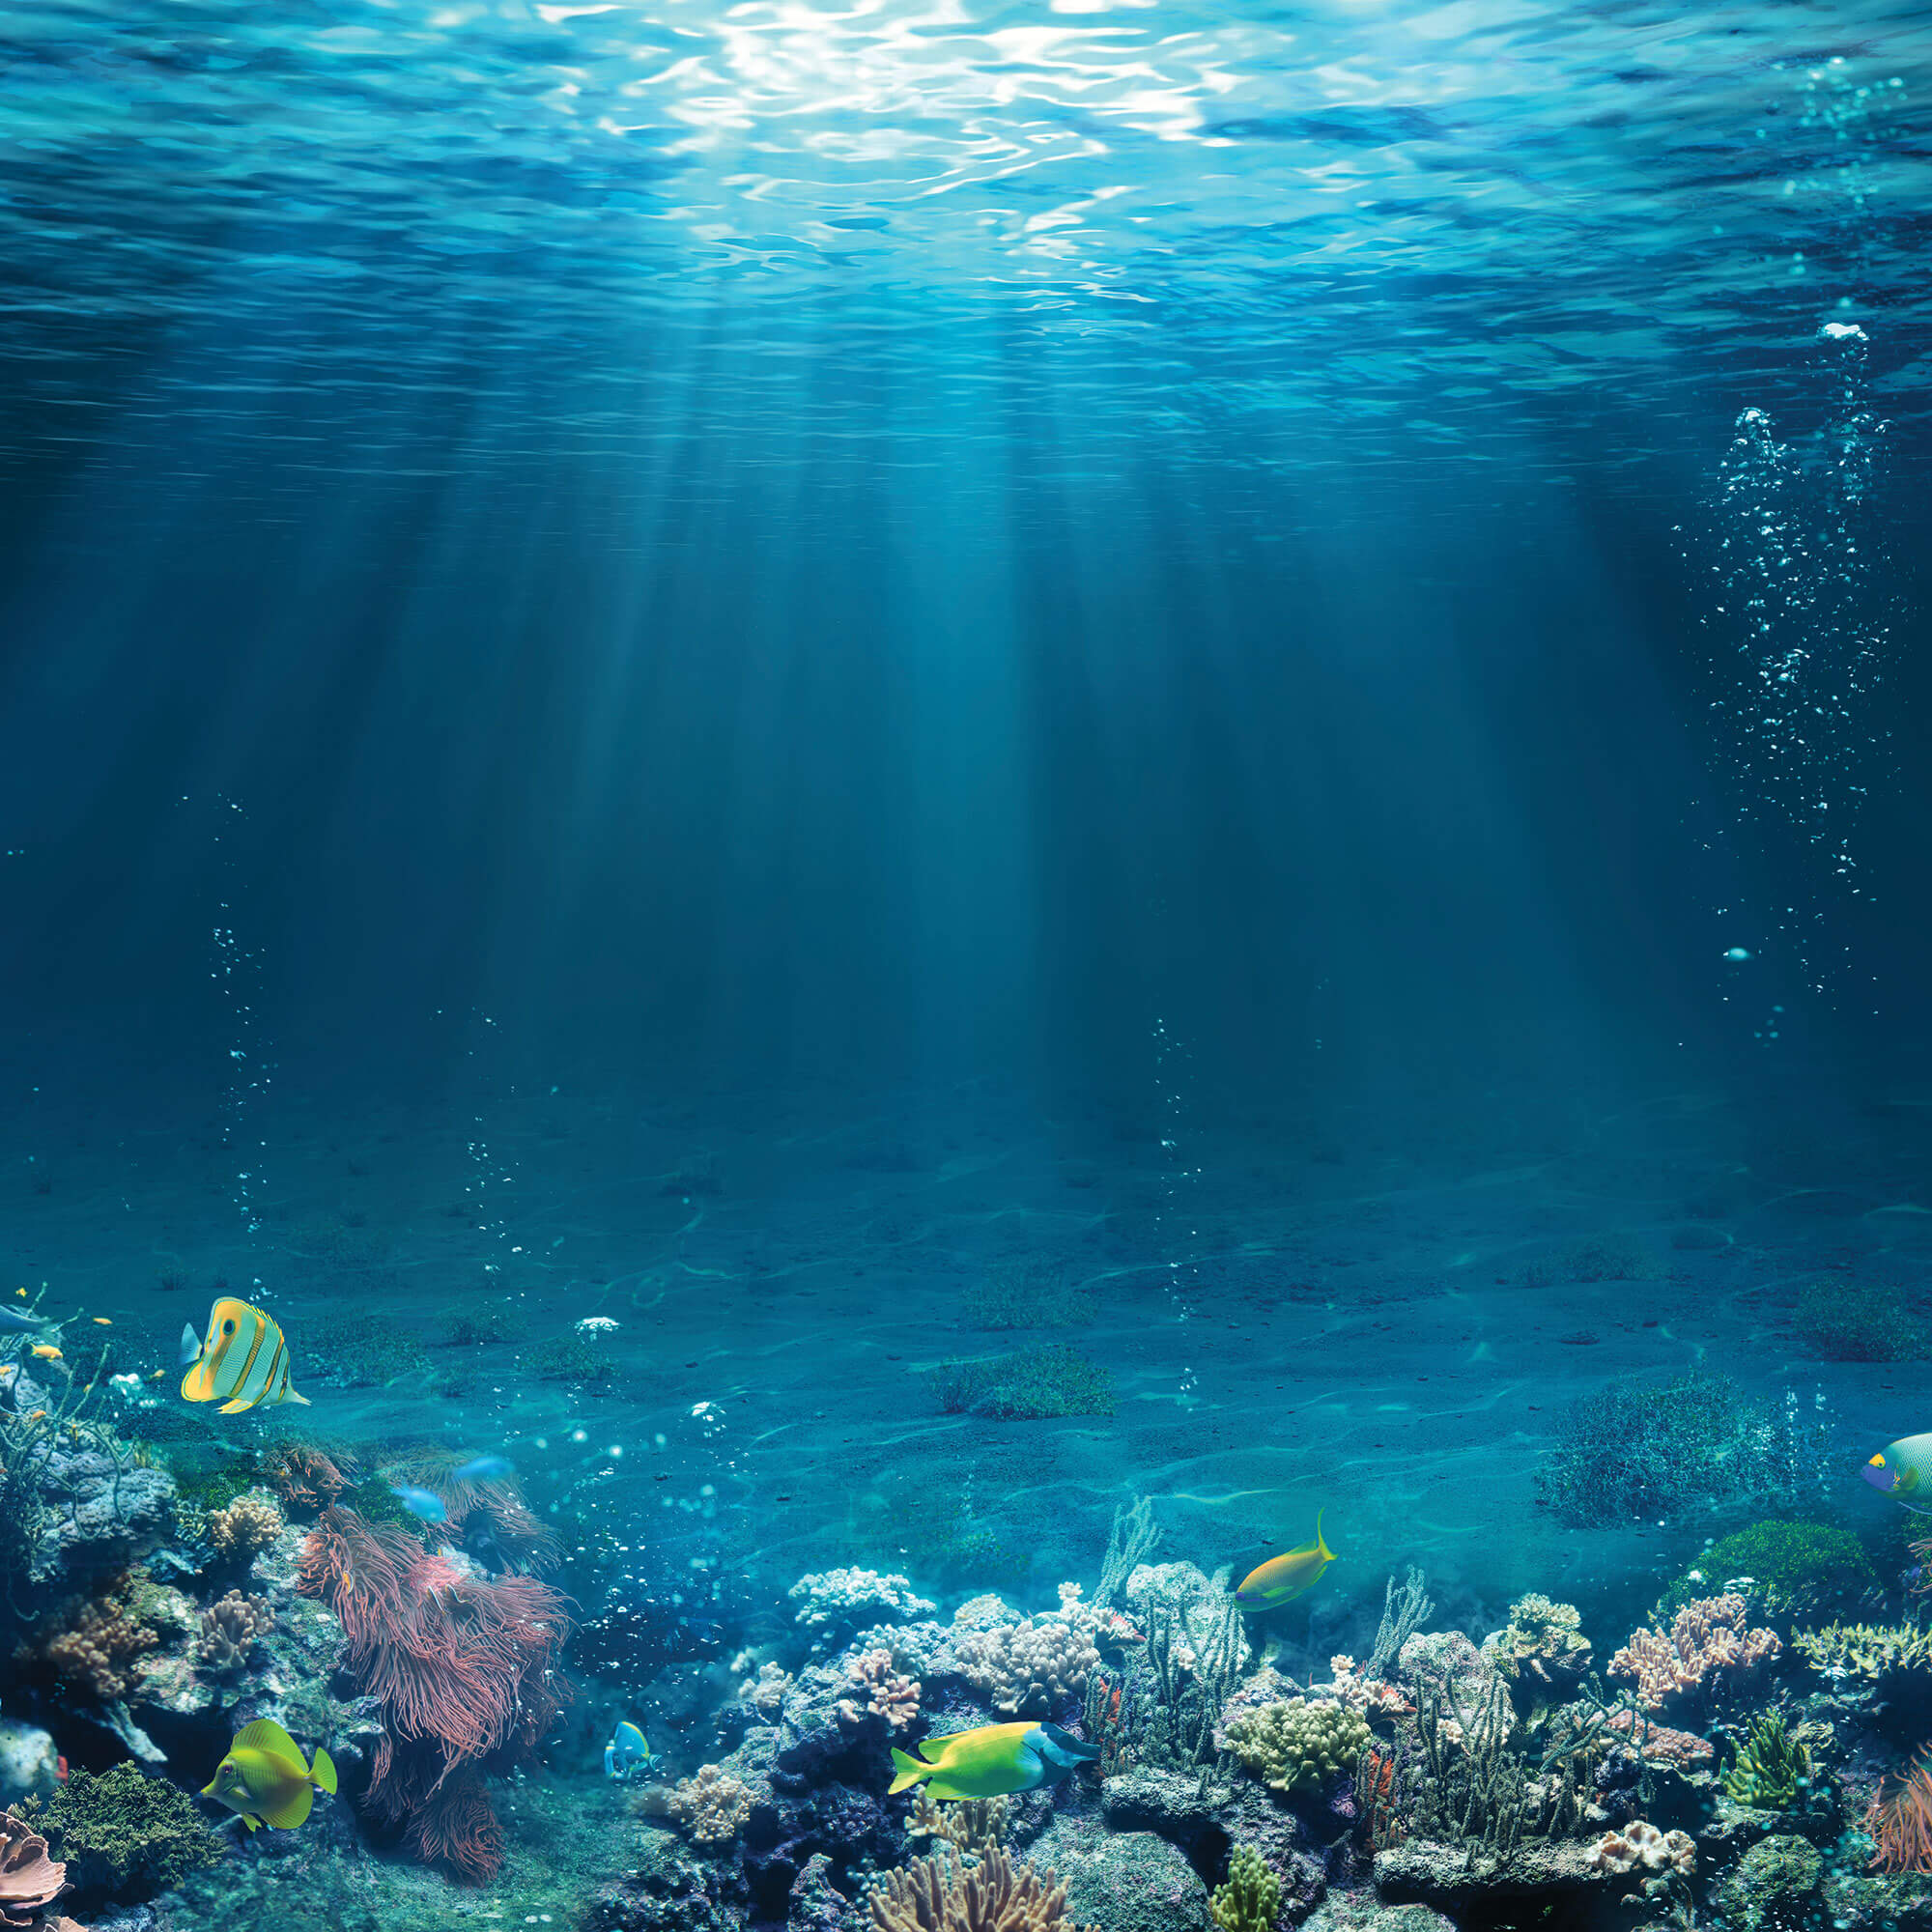 Underwater view of sunlight shining through surface of water